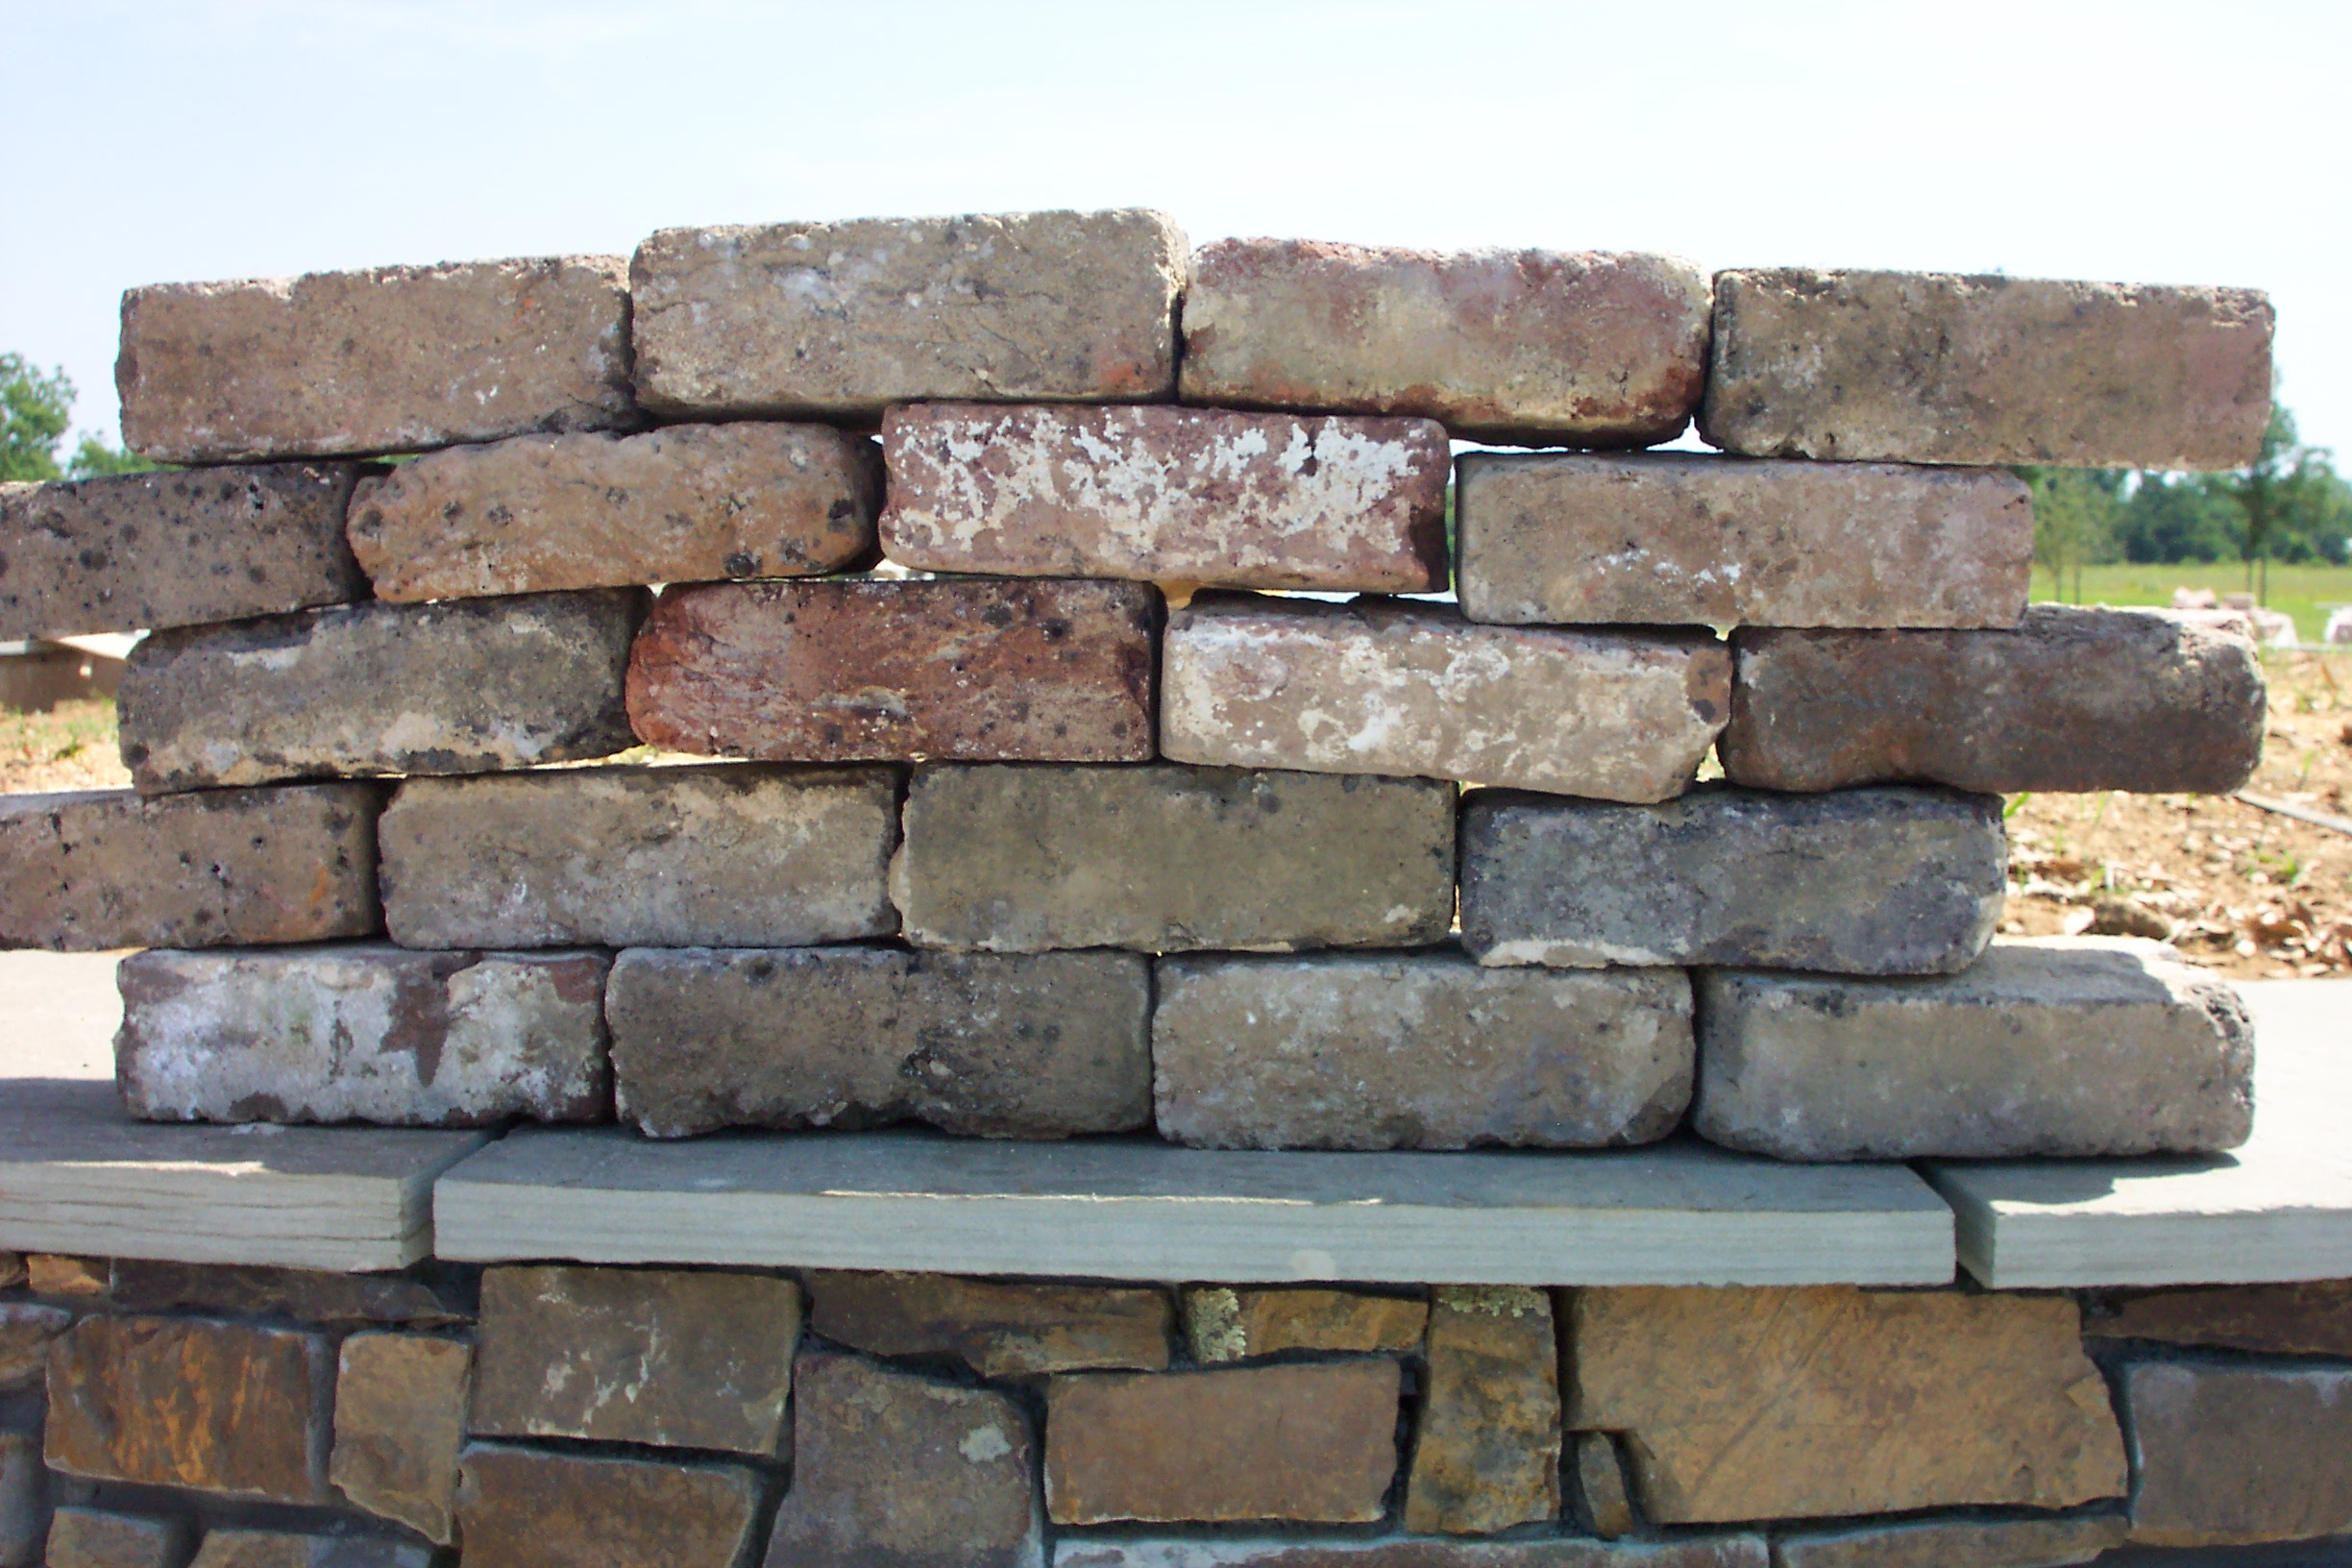 dating bricks This allows bricks to be laid bonded in a structure which increases stability and strength for an example, see the illustration of bricks laid in english bond, at the.